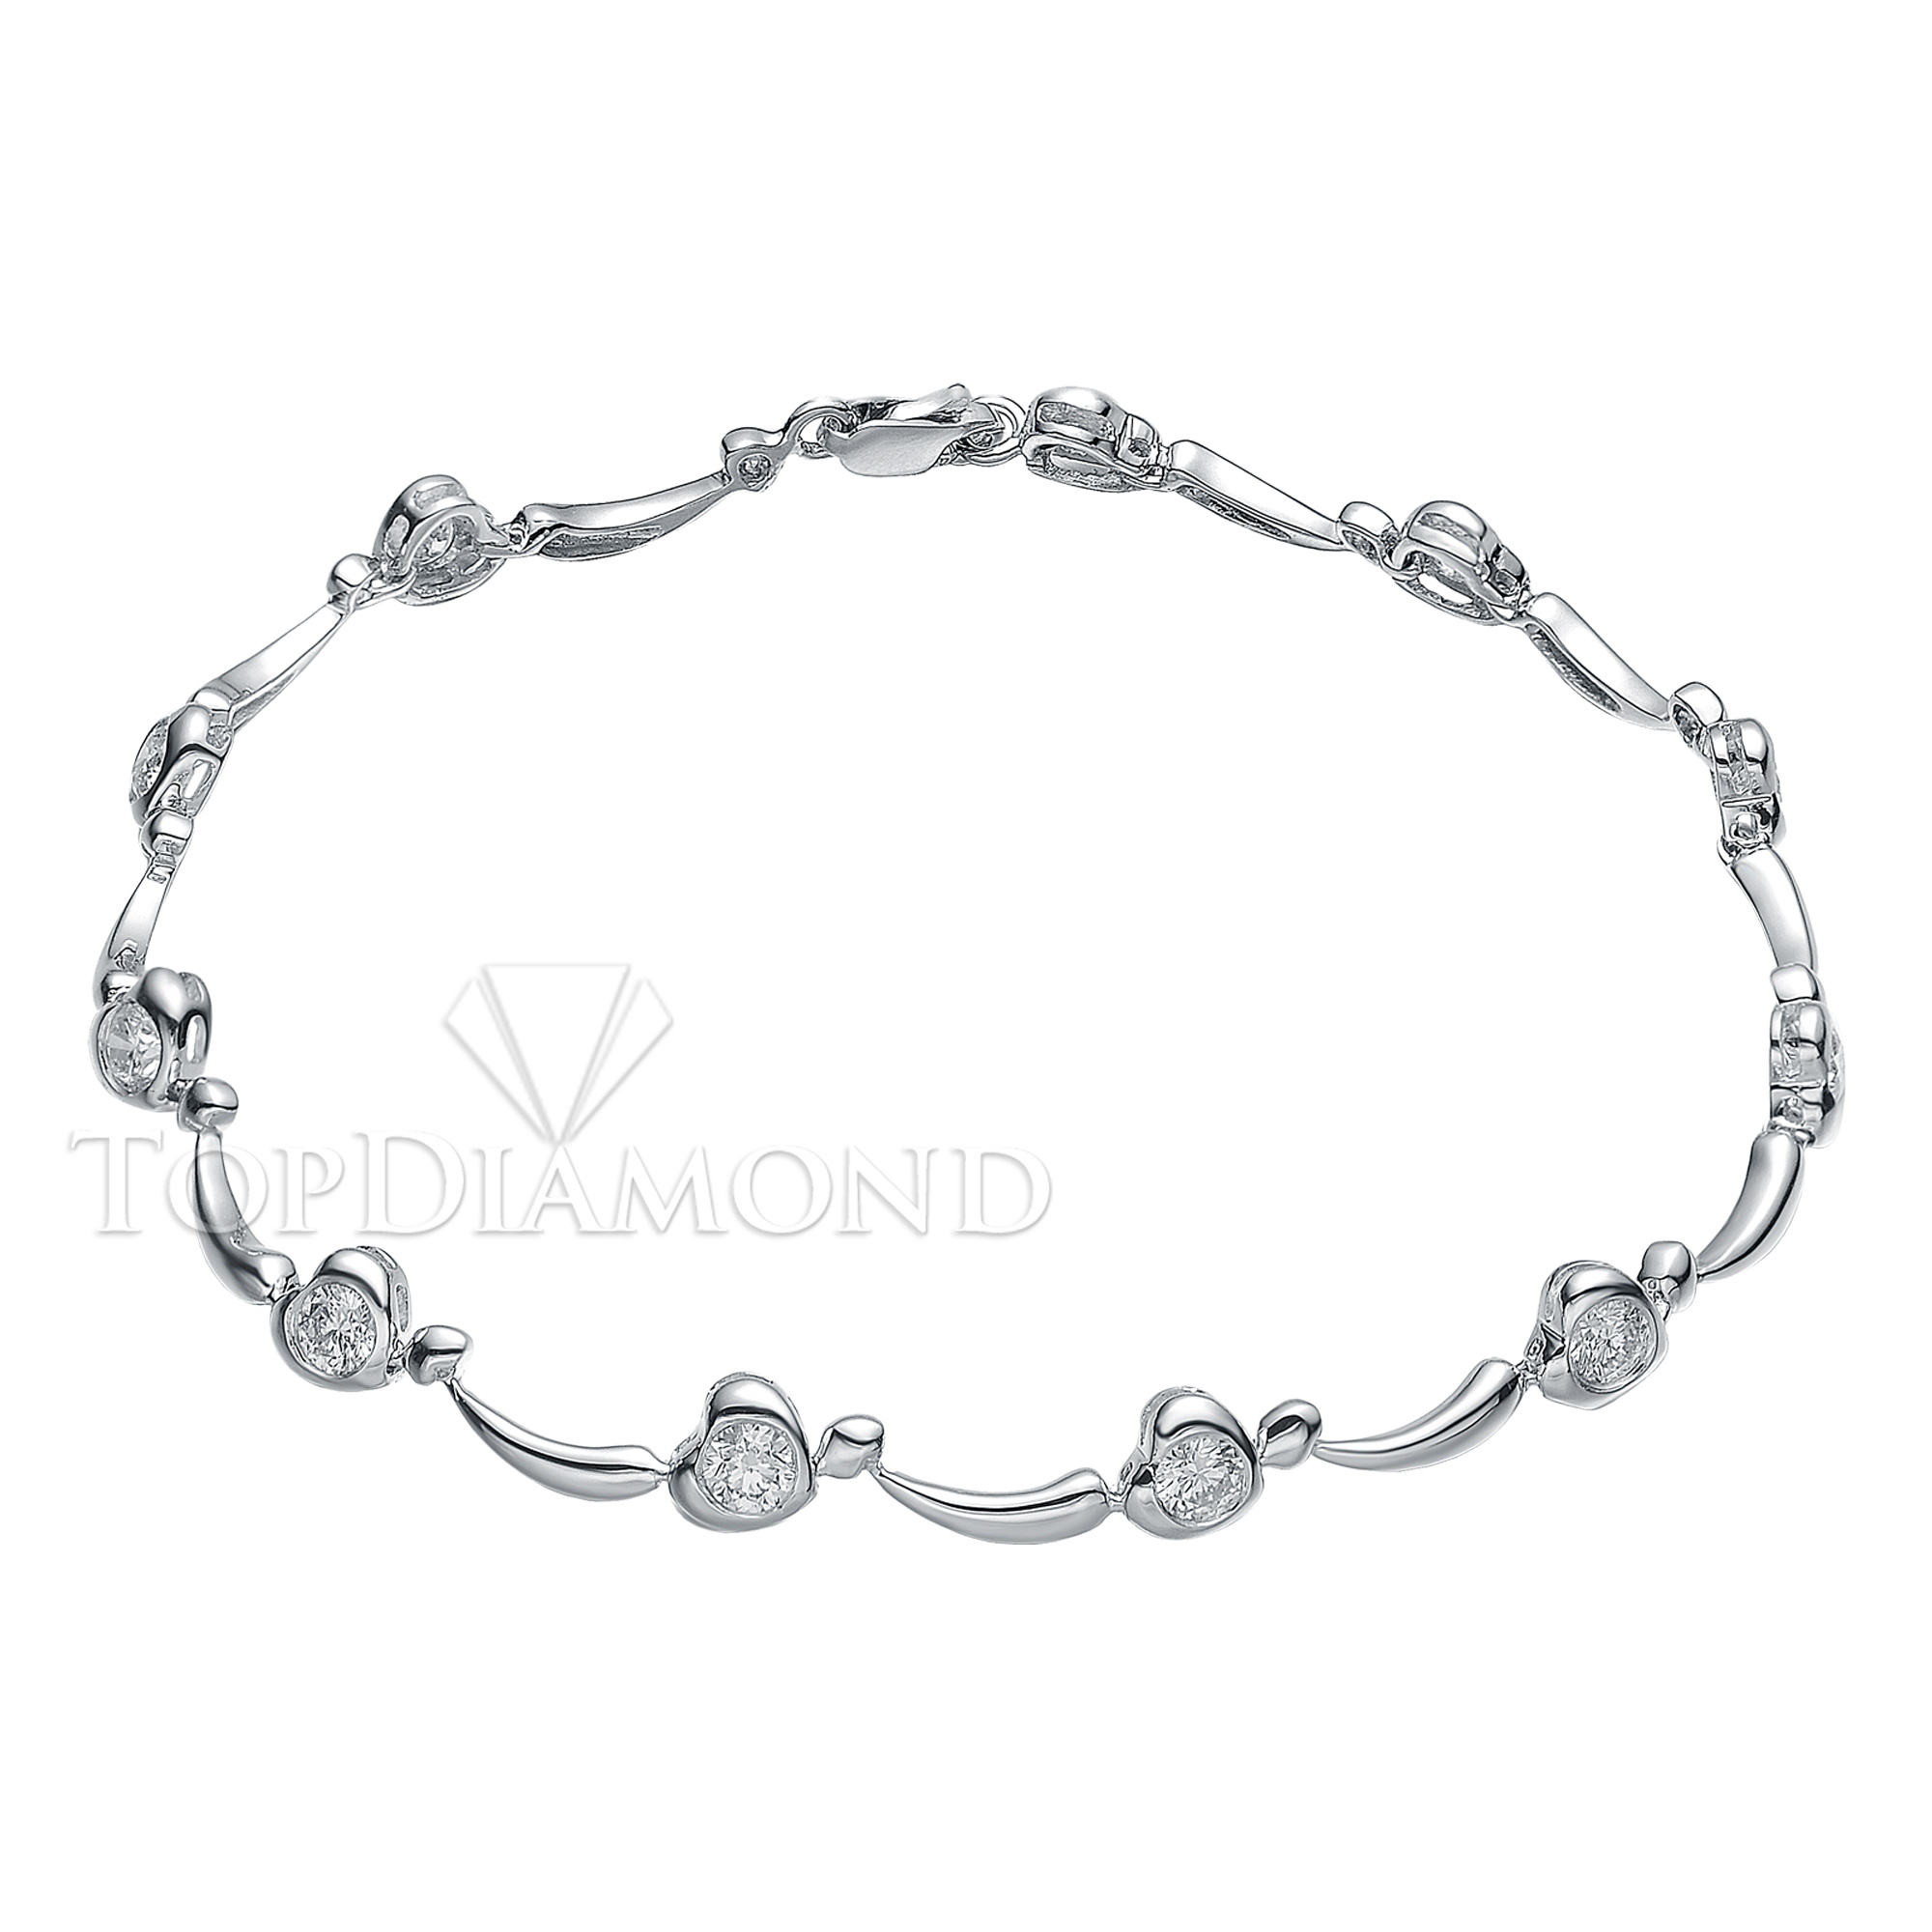 HPBL0134. Diamond 18K White Gold Bracelet HPBL0134, Diamond Bracelets. Bracelets. Top Diamonds & Jewelry